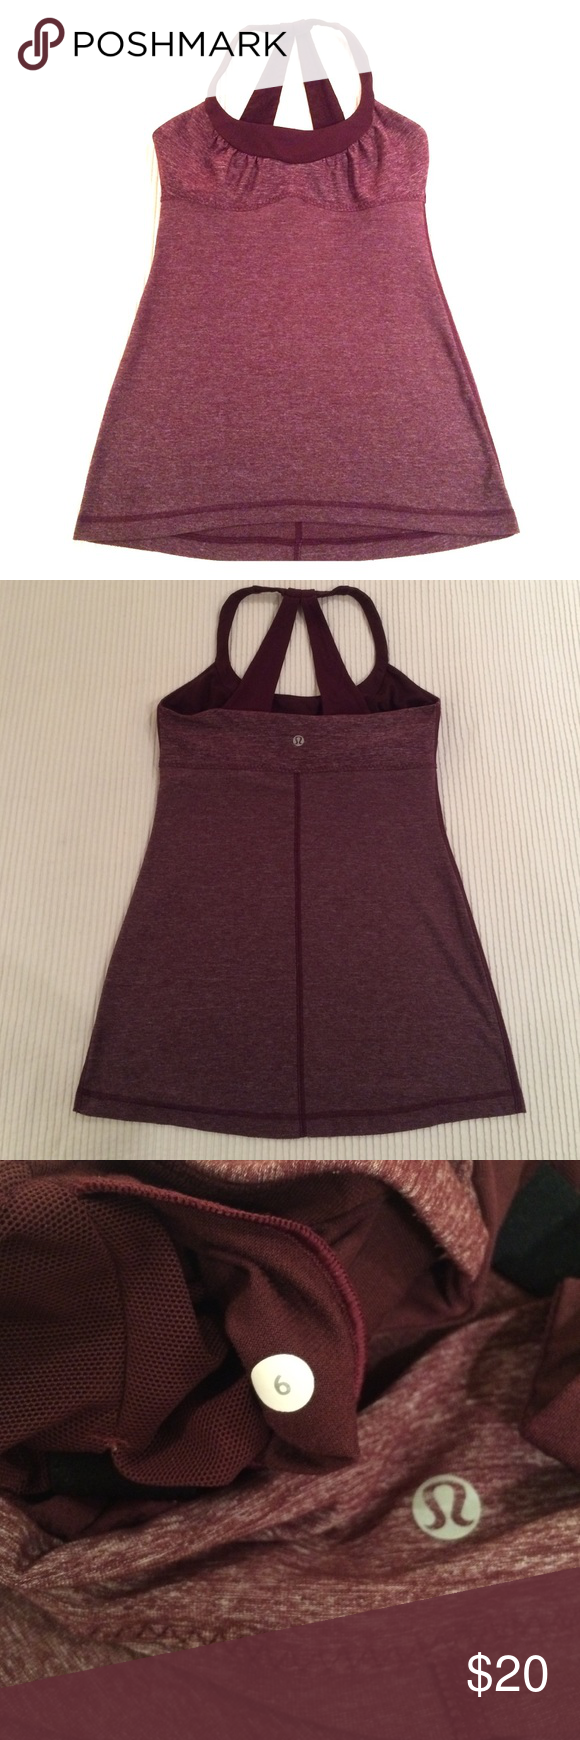 Lululemon tank Cute tank with adjustable shelf bra (see last photo). In excellent condition. Color is a heathered cranberry. lululemon athletica Tops Tank Tops